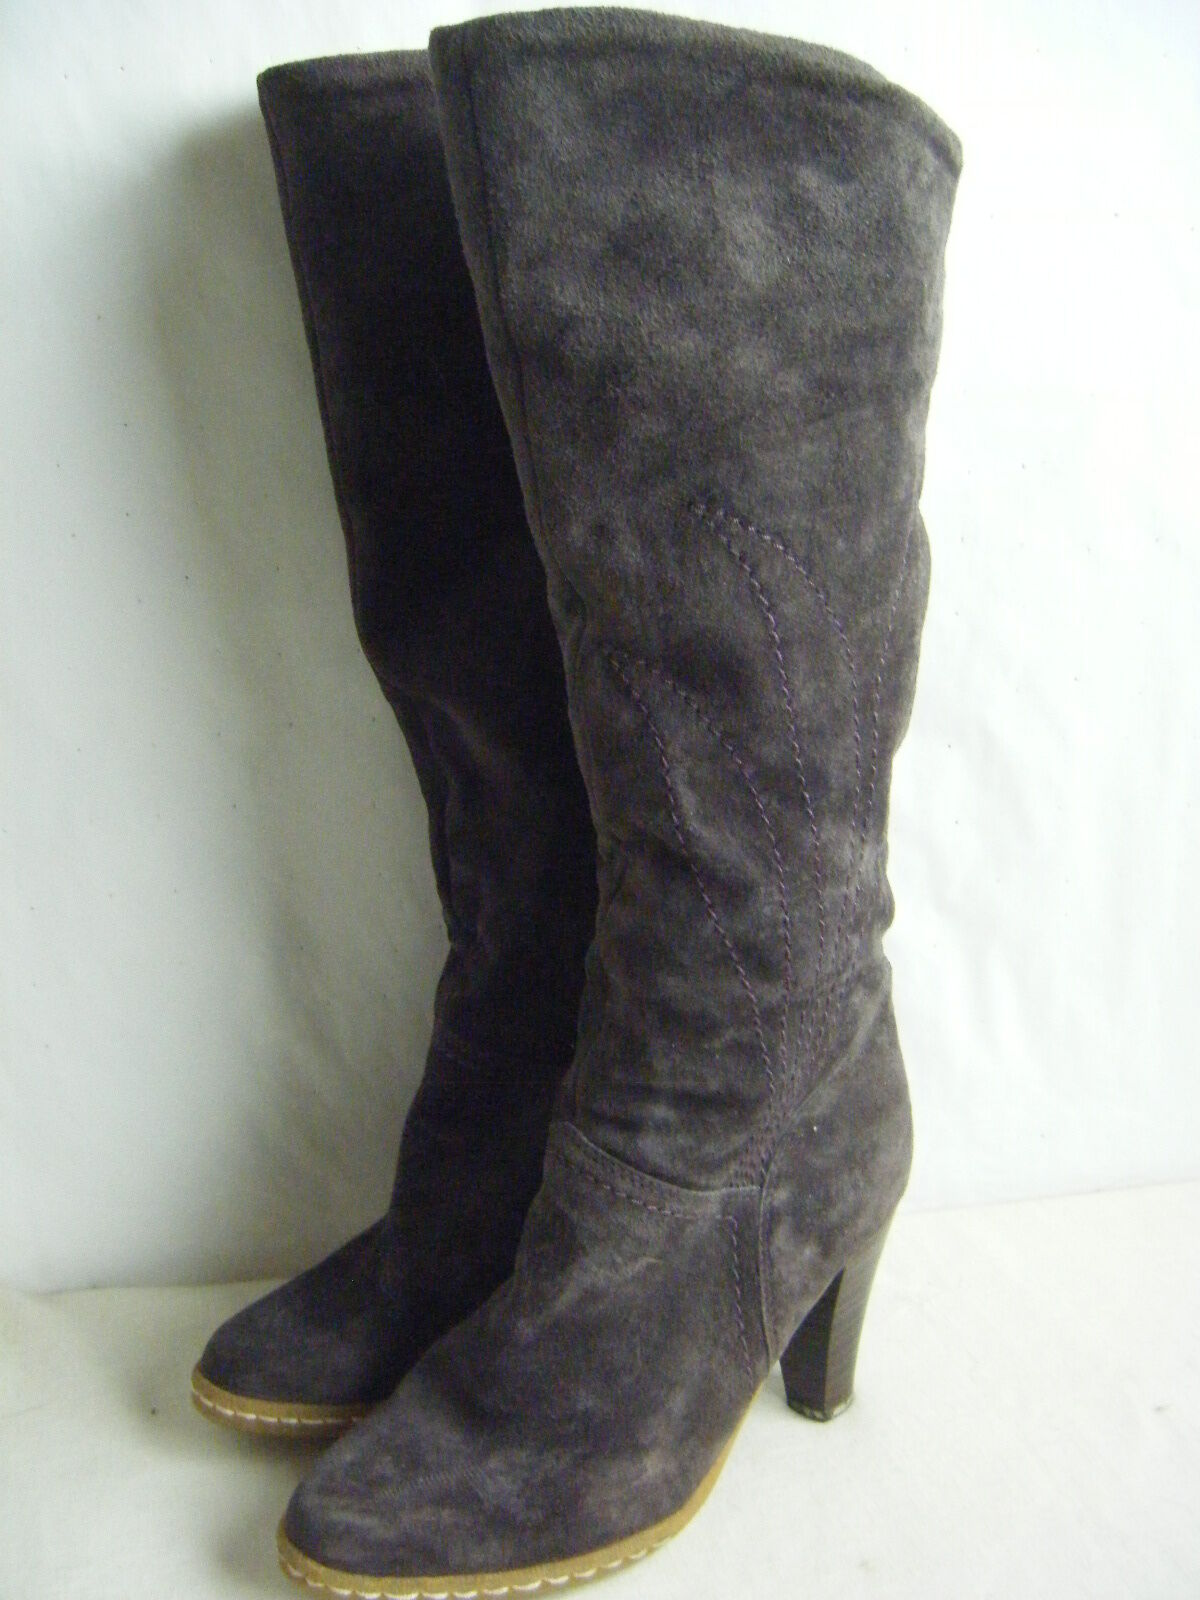 LIBELLE Vtg 70s lila Suede Tall Tall Tall Stiefel w Fleece Lined- sz 6 ba7aed